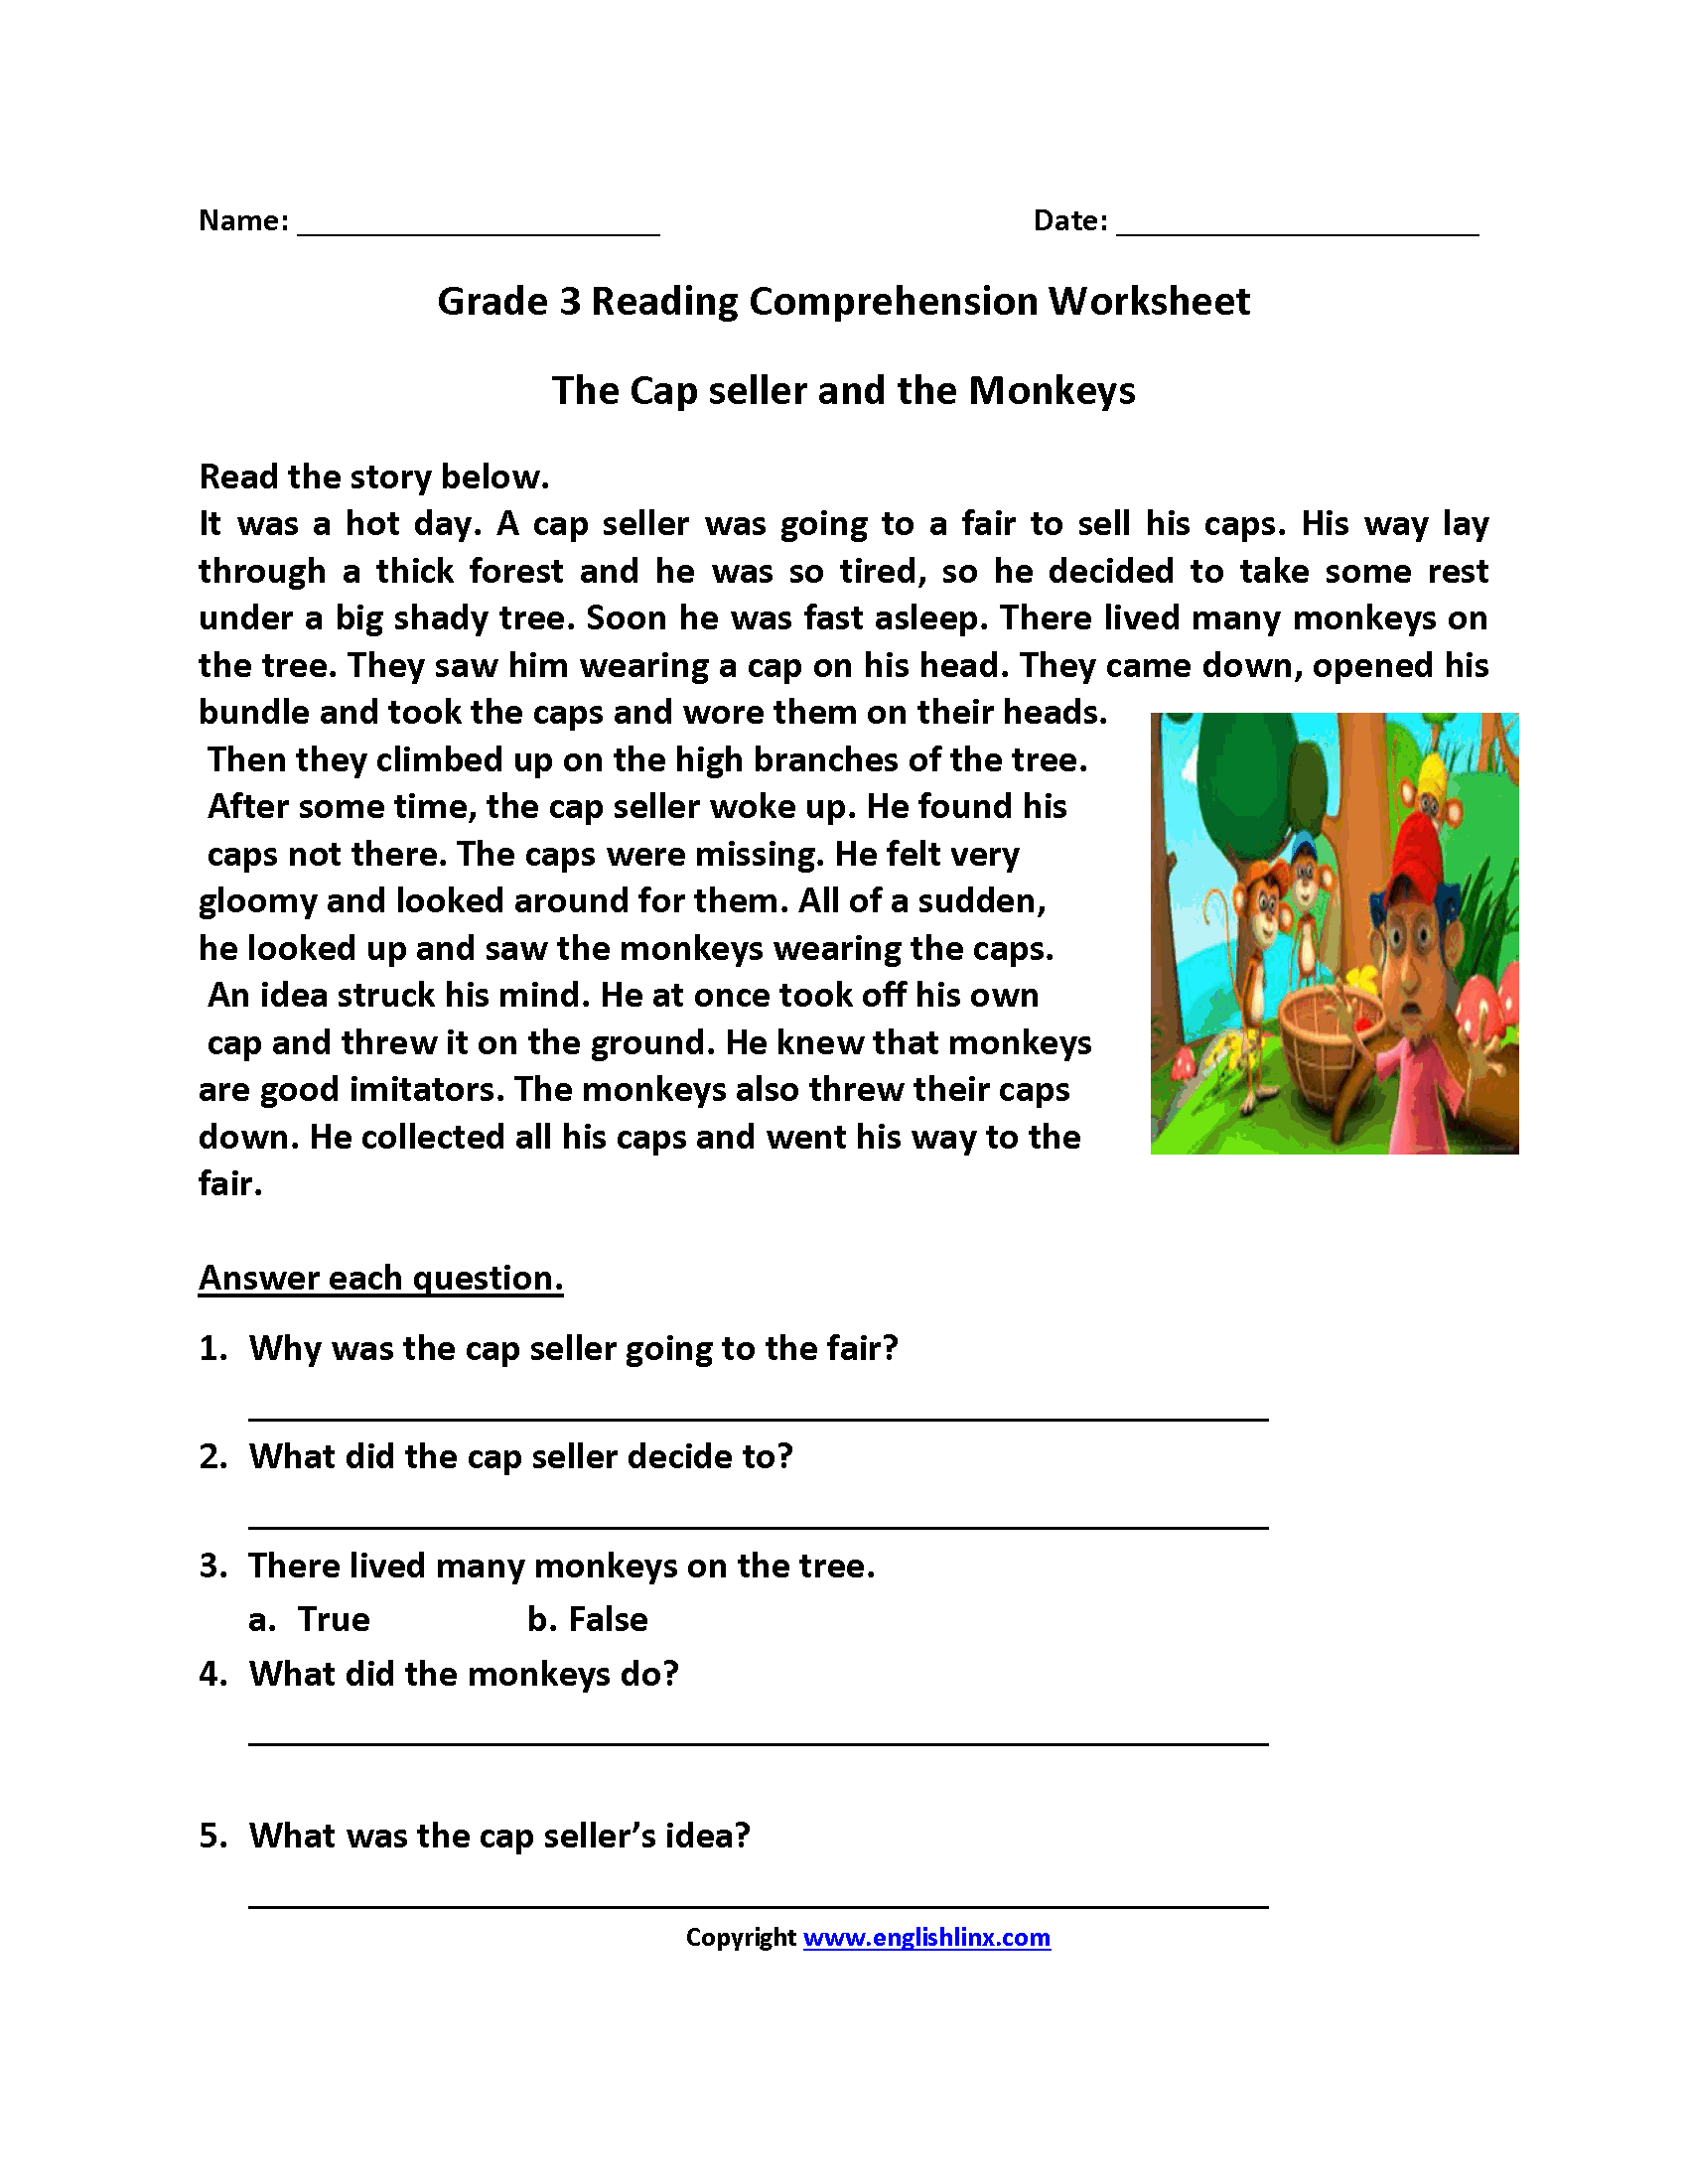 Cap Seller and Monkeys Third Grade Reading Worksheets